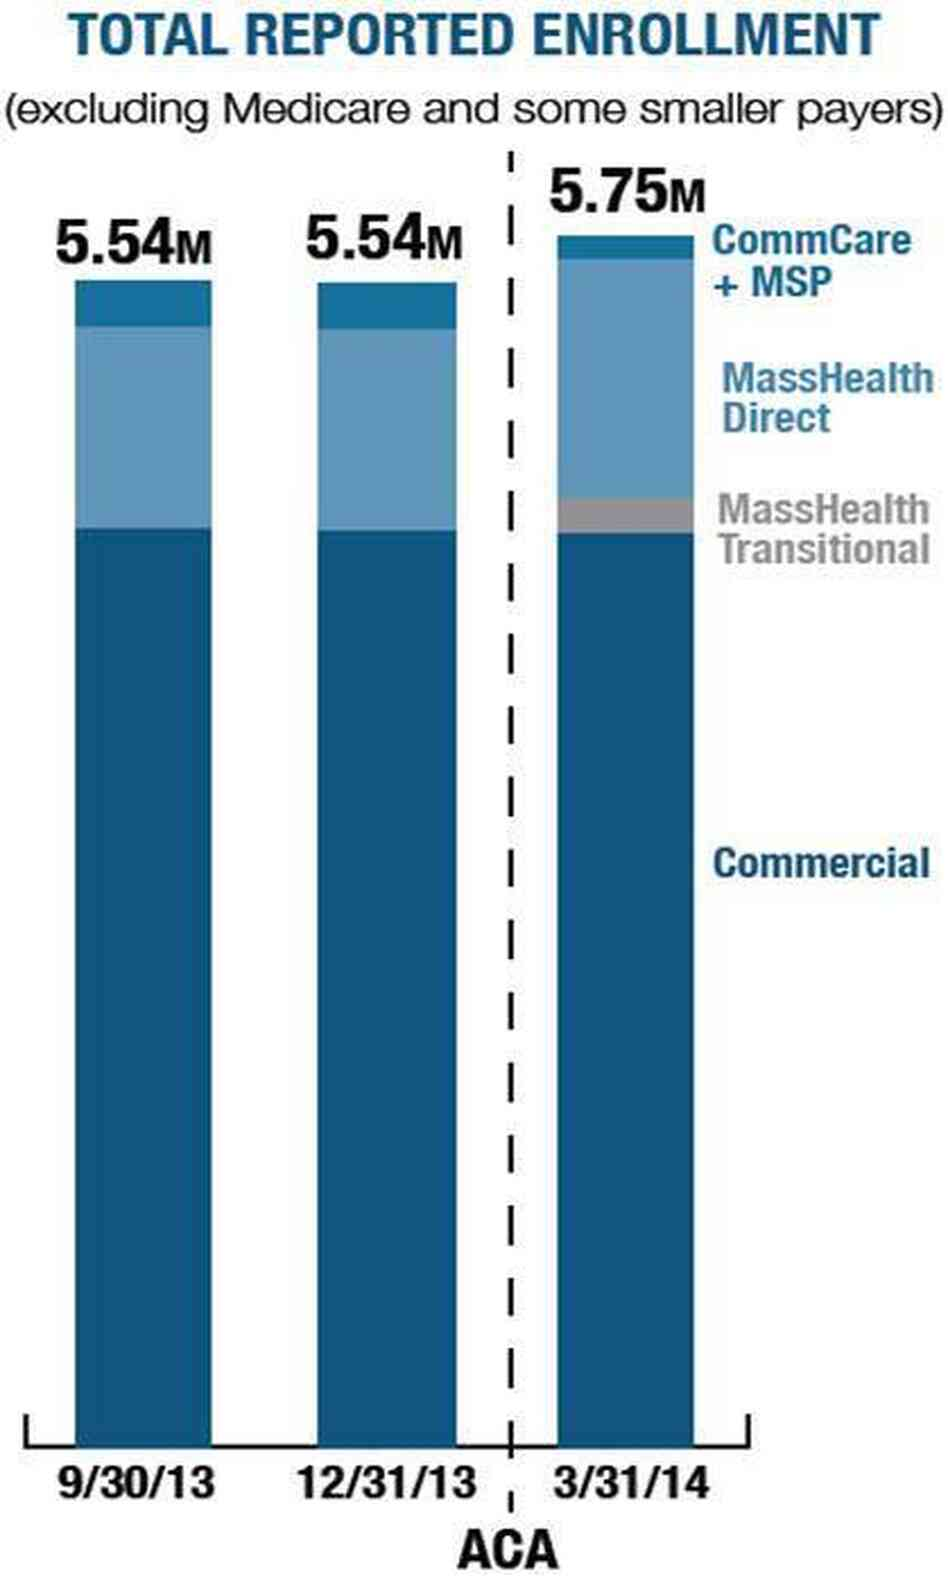 From December 2013 to March 2014, the public and private health insurance groups in Massachusetts reported an overall increase in health insurance enrollment by more than 215,000 people. Enrollment in private plans essentially held steady, as enrollment in the state's public plans expanded.